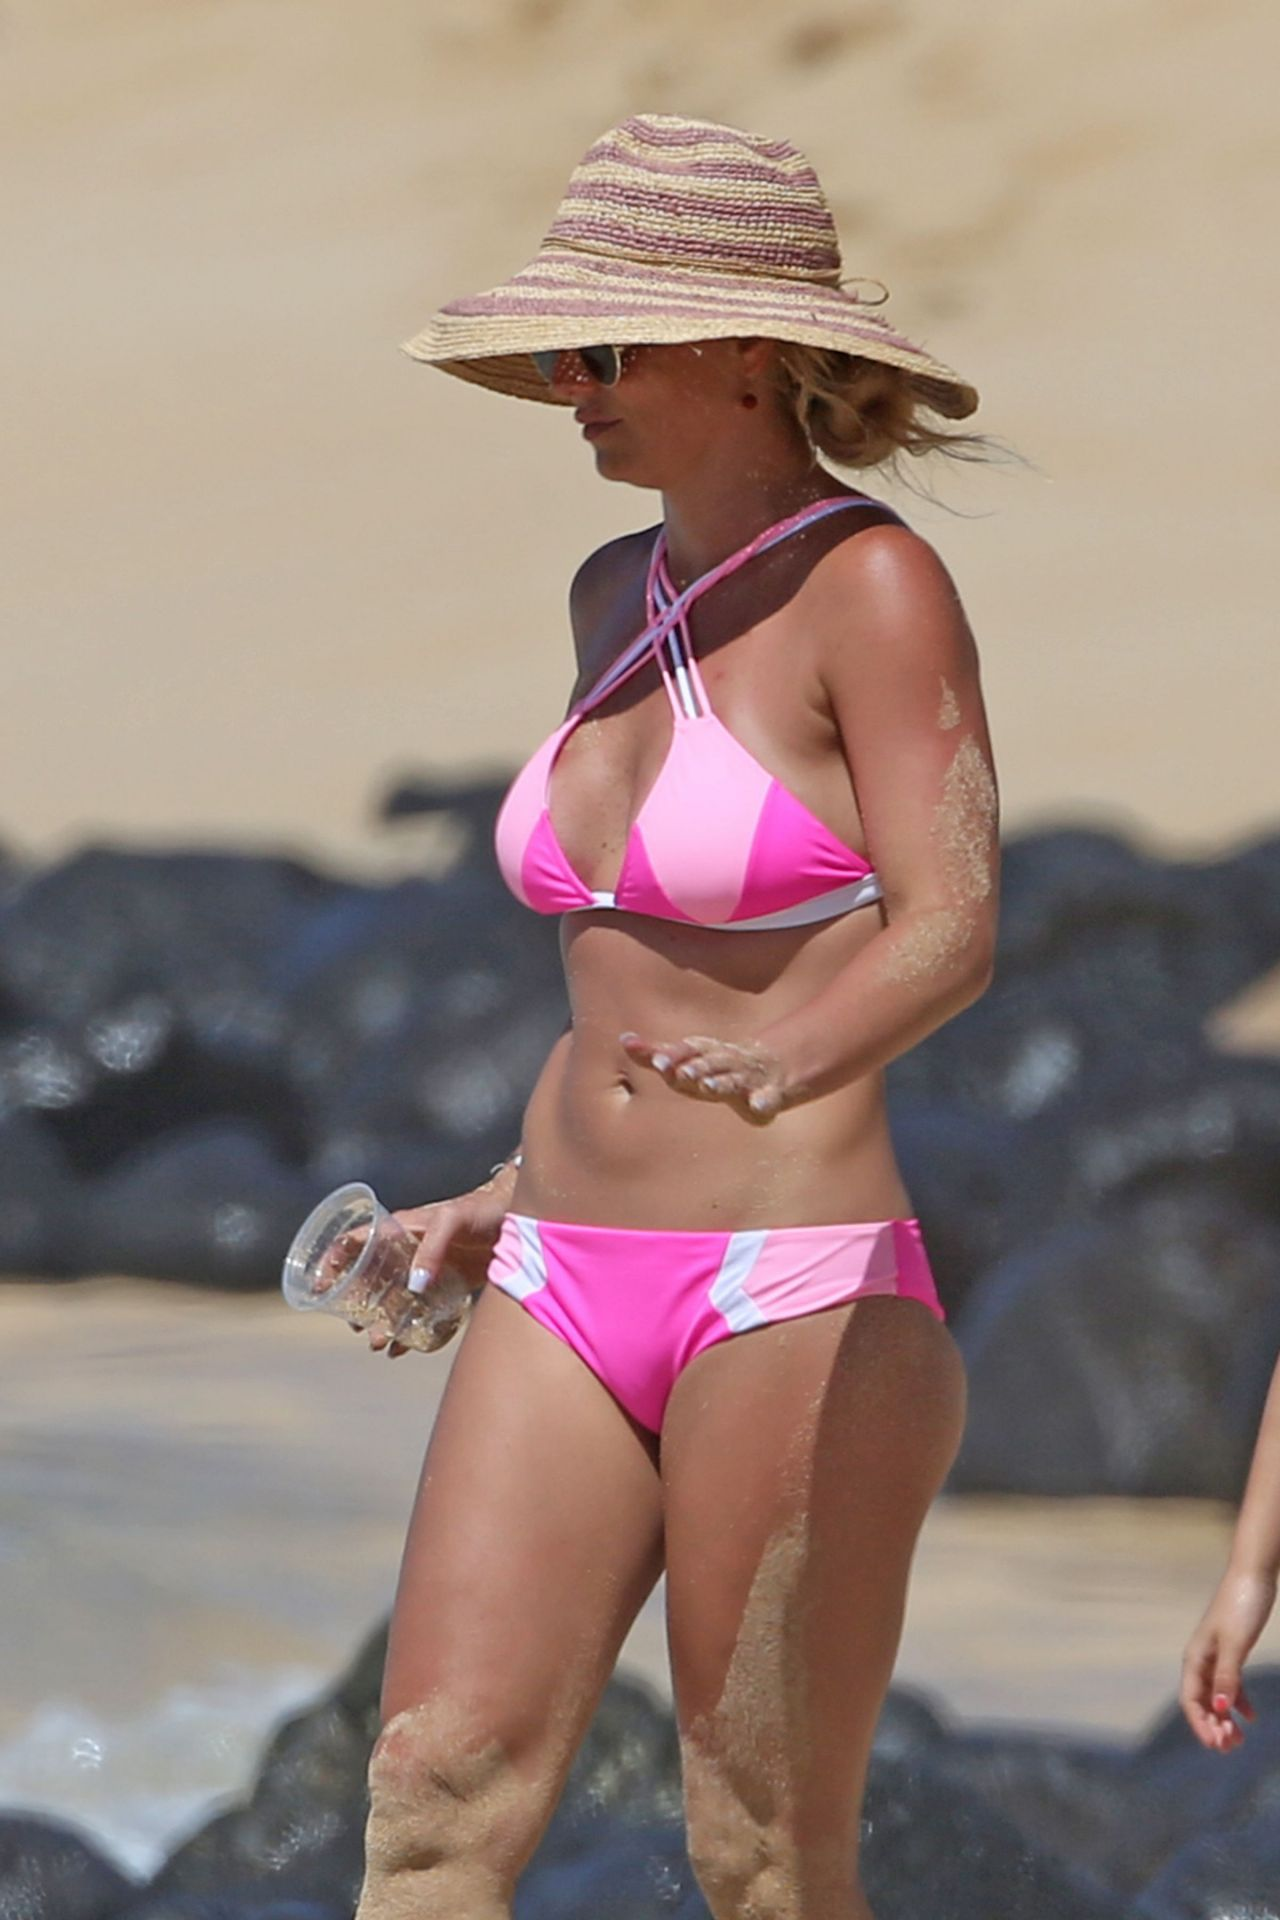 Communication on this topic: VIDEO Jessica Lu, britney-spears-bikini-photos-2/